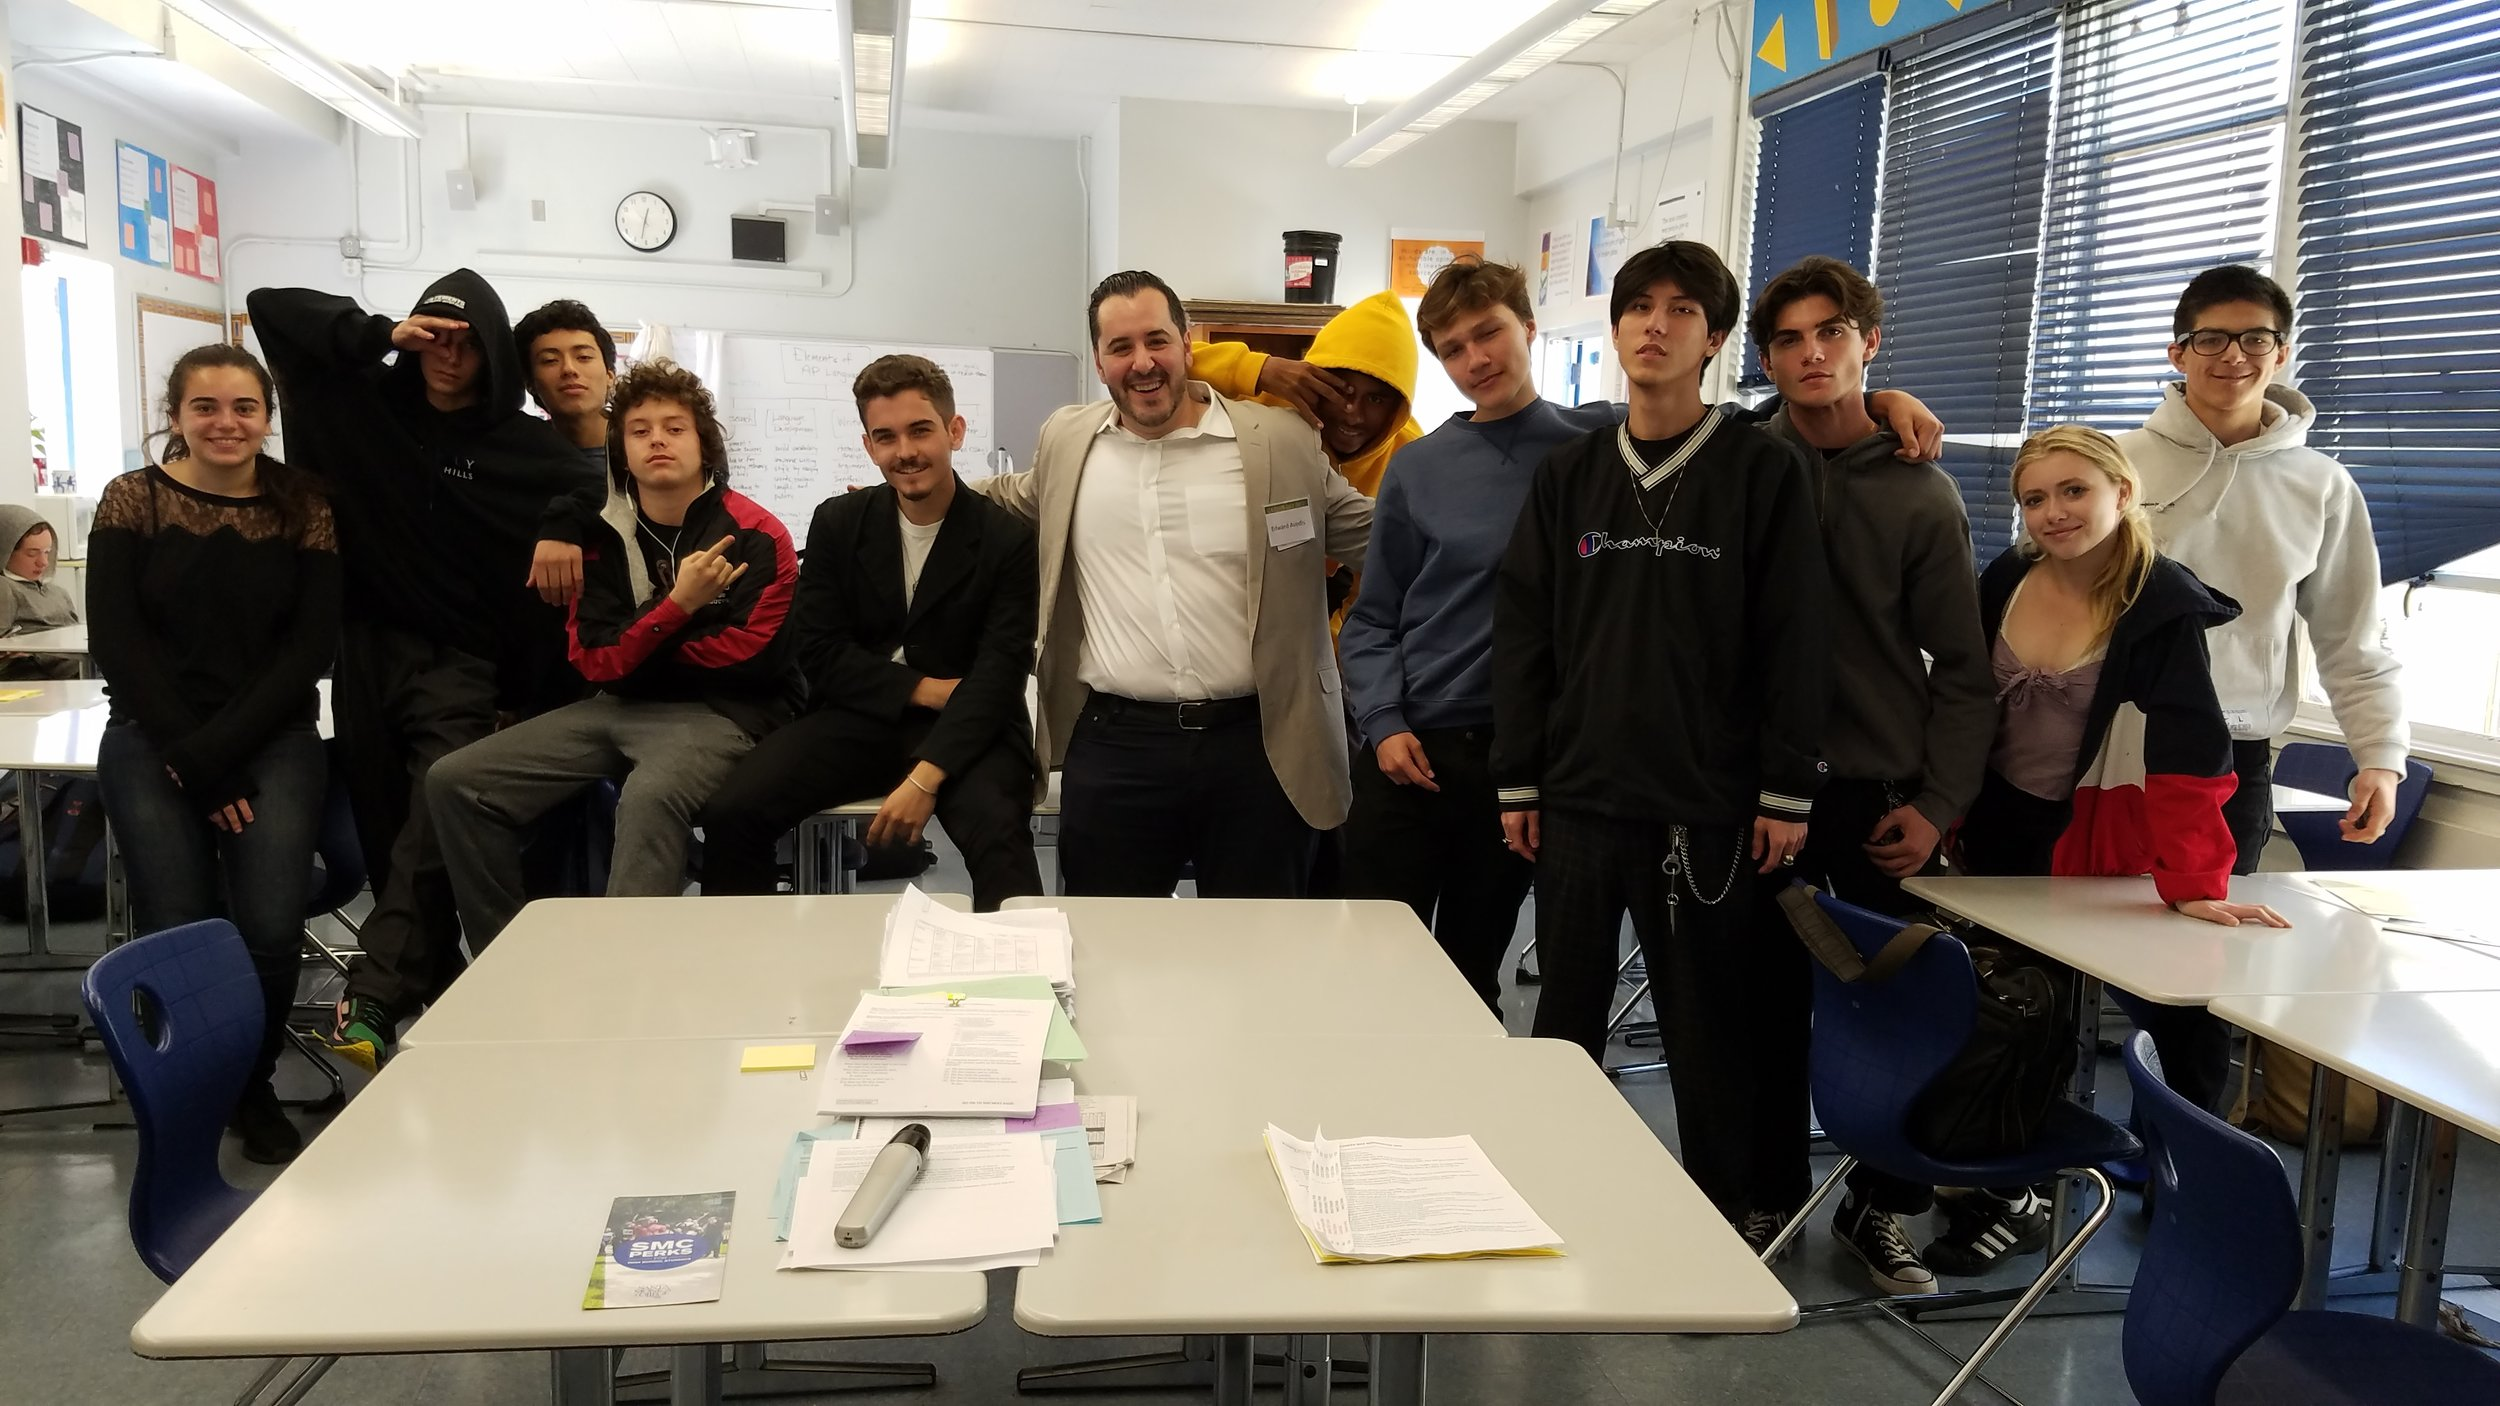 With a group of awesome kids at the SAMOHI Career Day in March 2017 ! I had the pleasure of sharing my story, and answering questions about entrepreneurship.